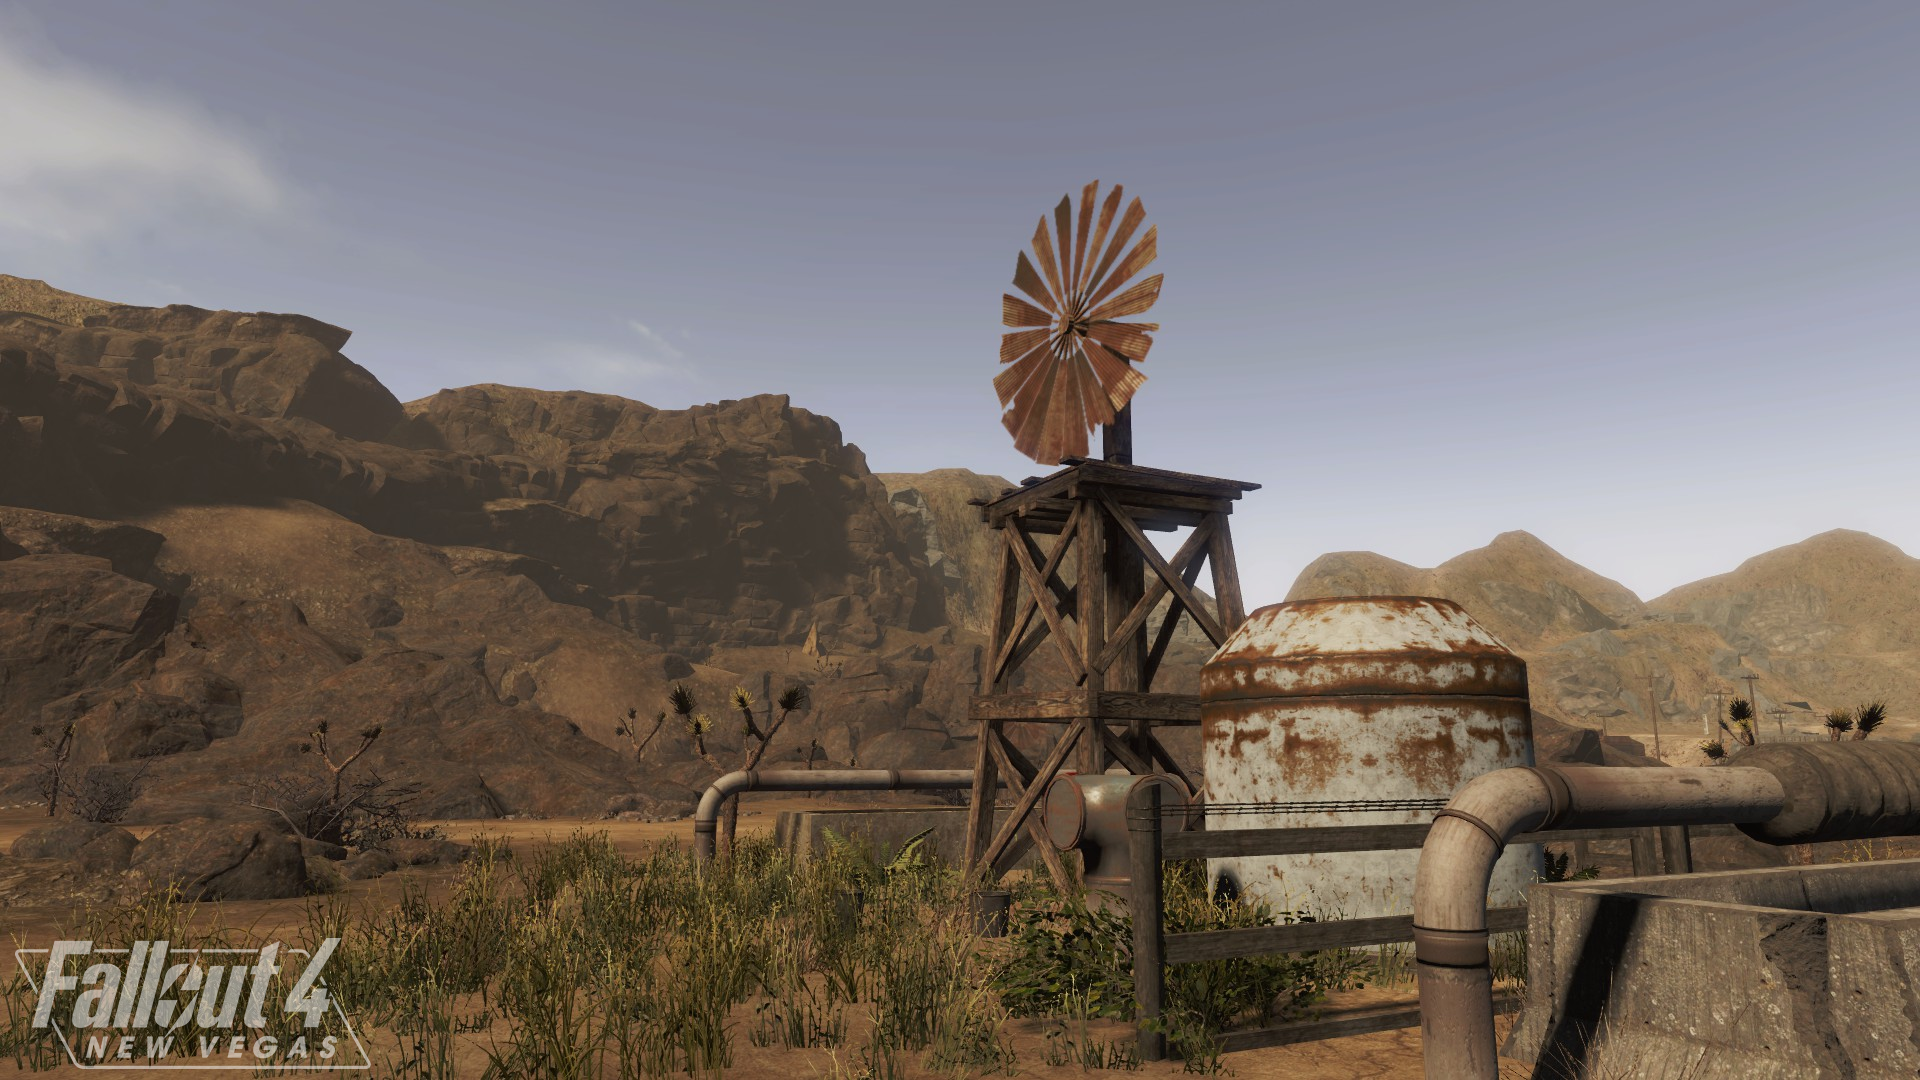 A quick shot taken around the Goodsprings Source.